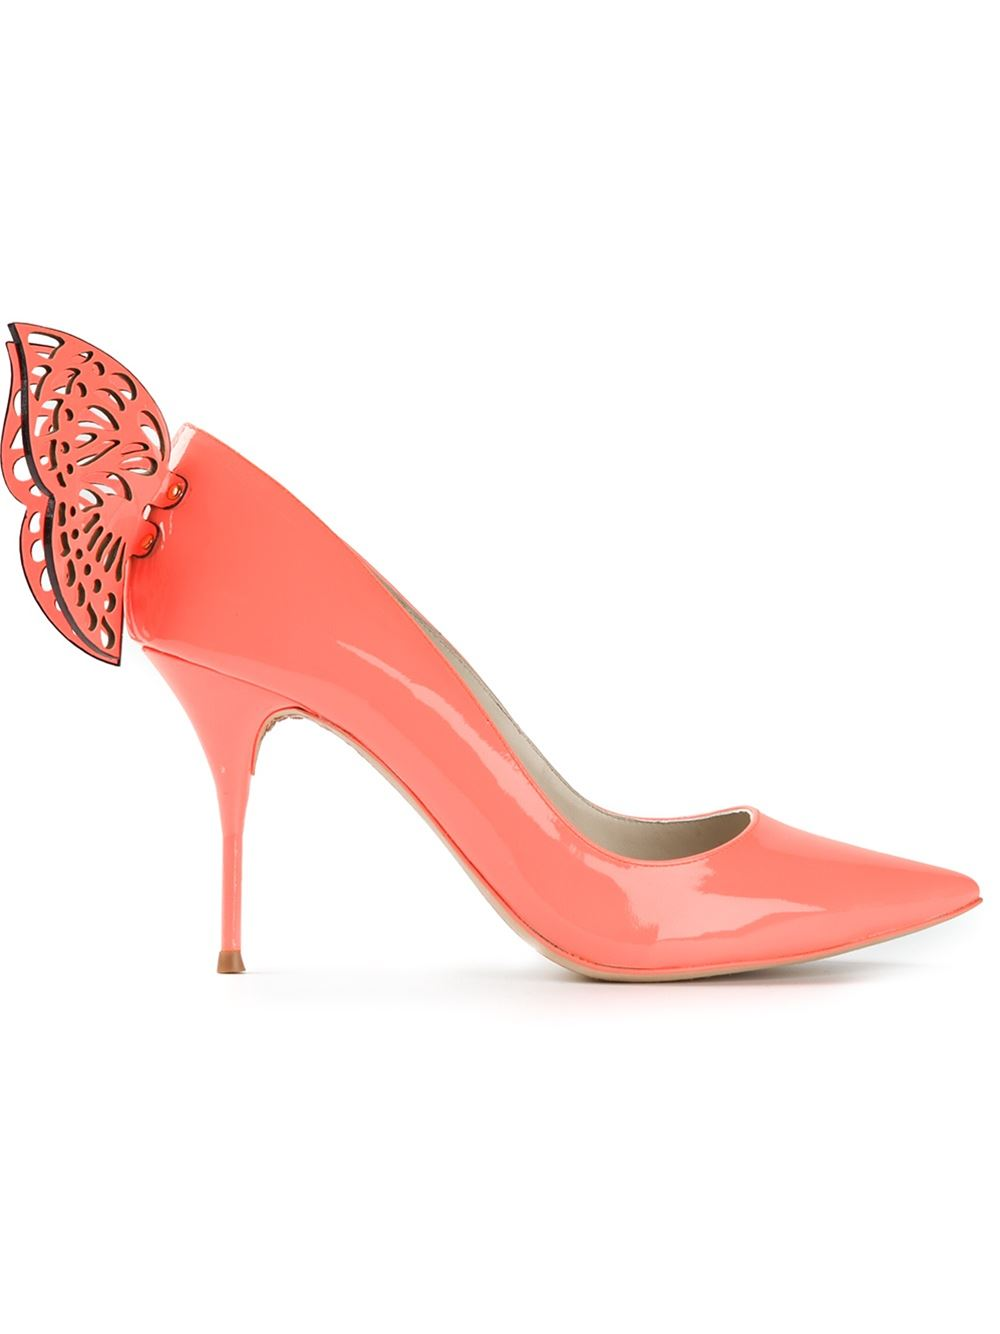 Sophia Webster Butterfly Wing Pumps - Smets - Farfetch.com